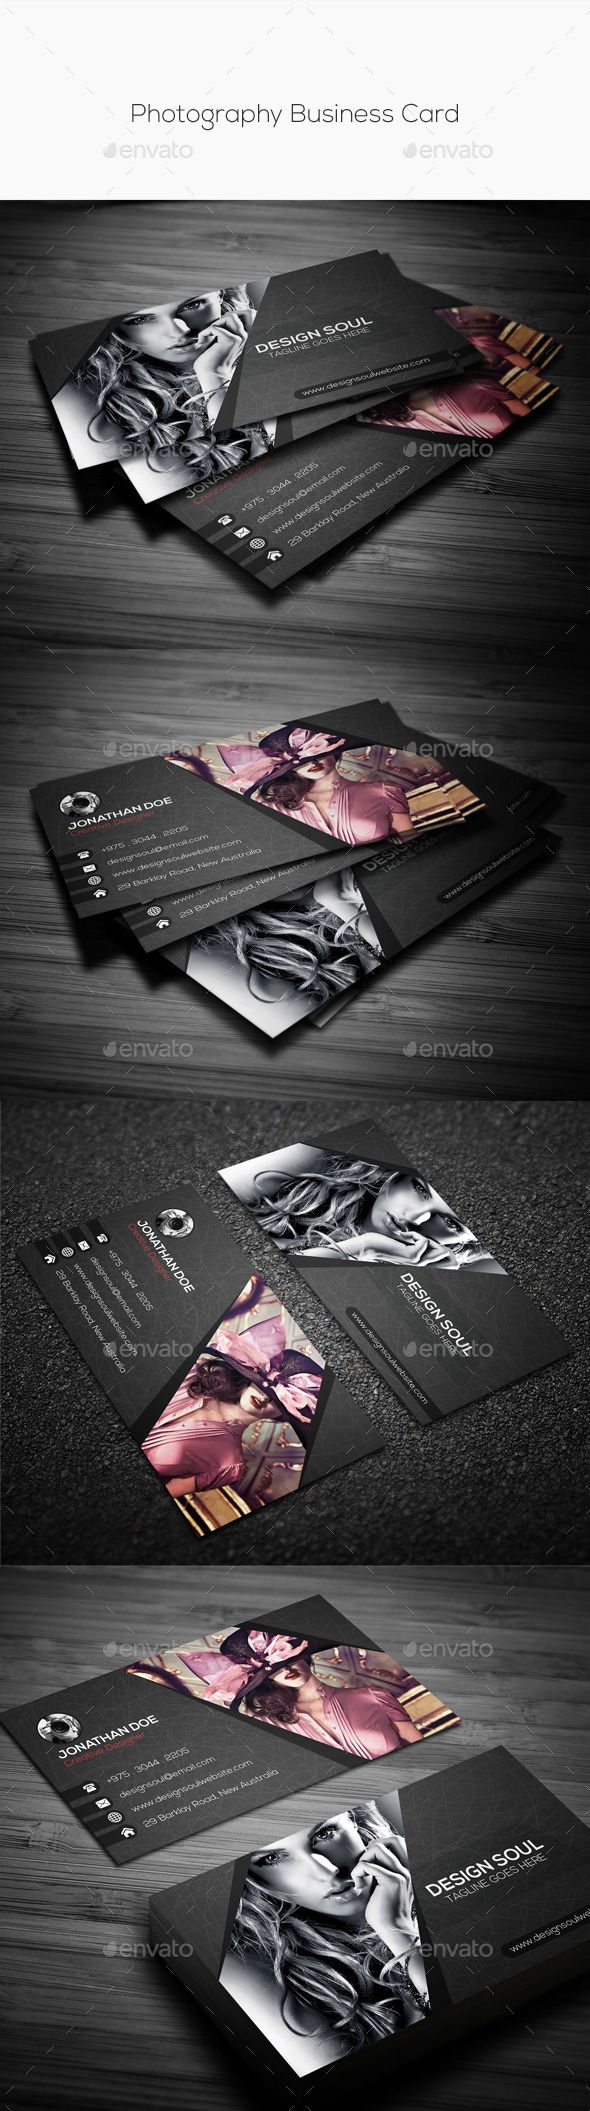 1000 images about graphic designer on pinterest buy photography business card by on graphicriver adobe photoshop fully layered psd files easy customizable and editable easy to use your own photossmart reheart Image collections